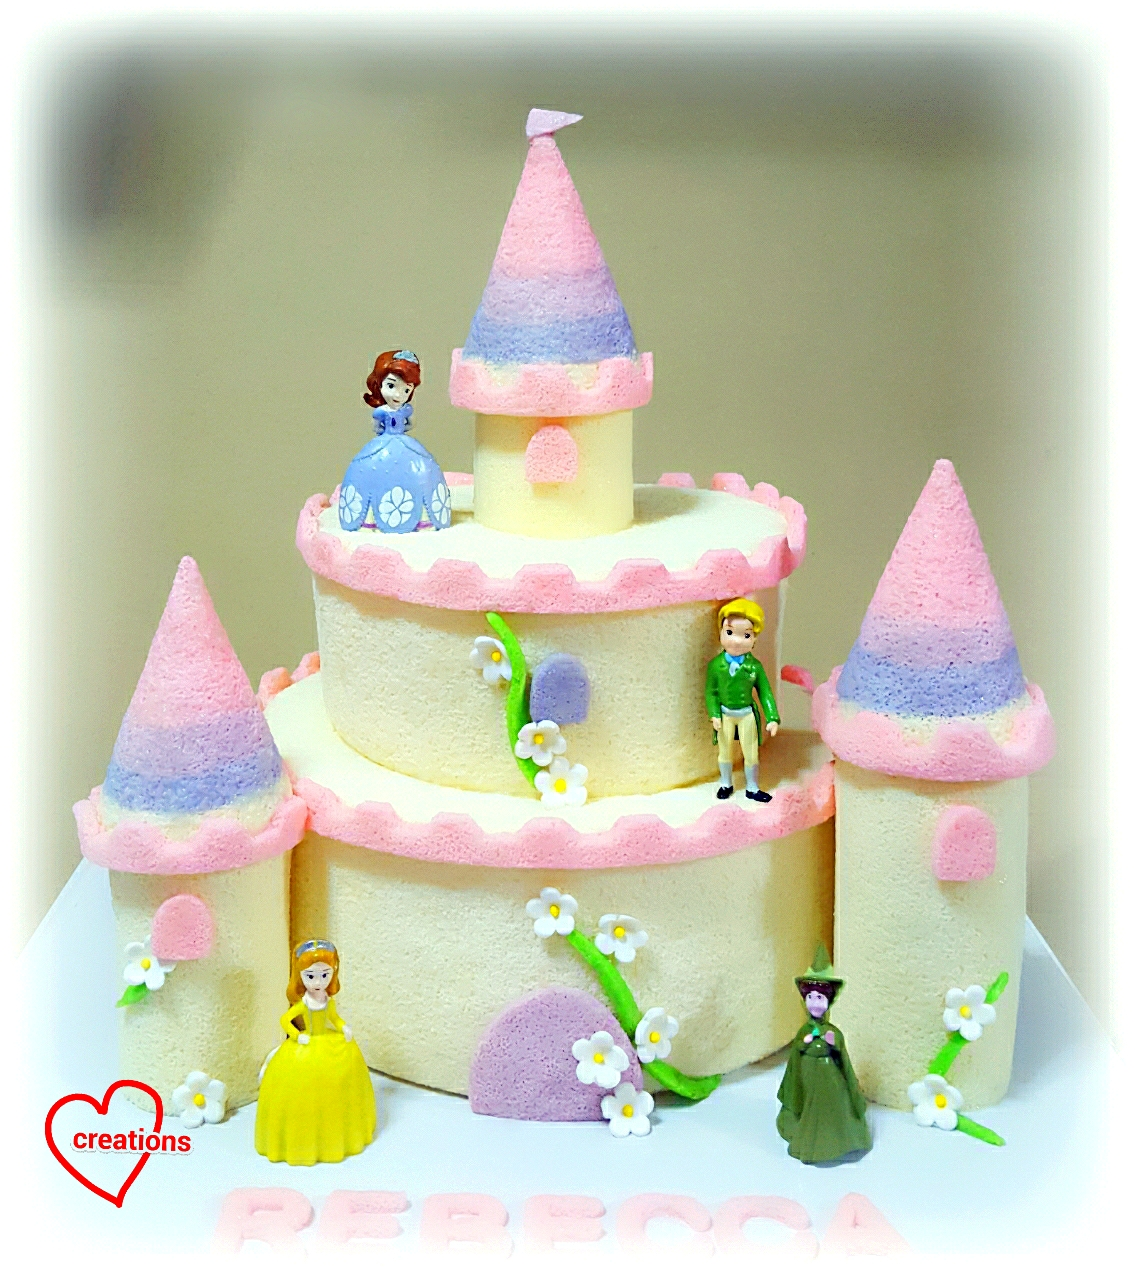 Loving Creations For You Princess Sophia Ombre Tier Castle